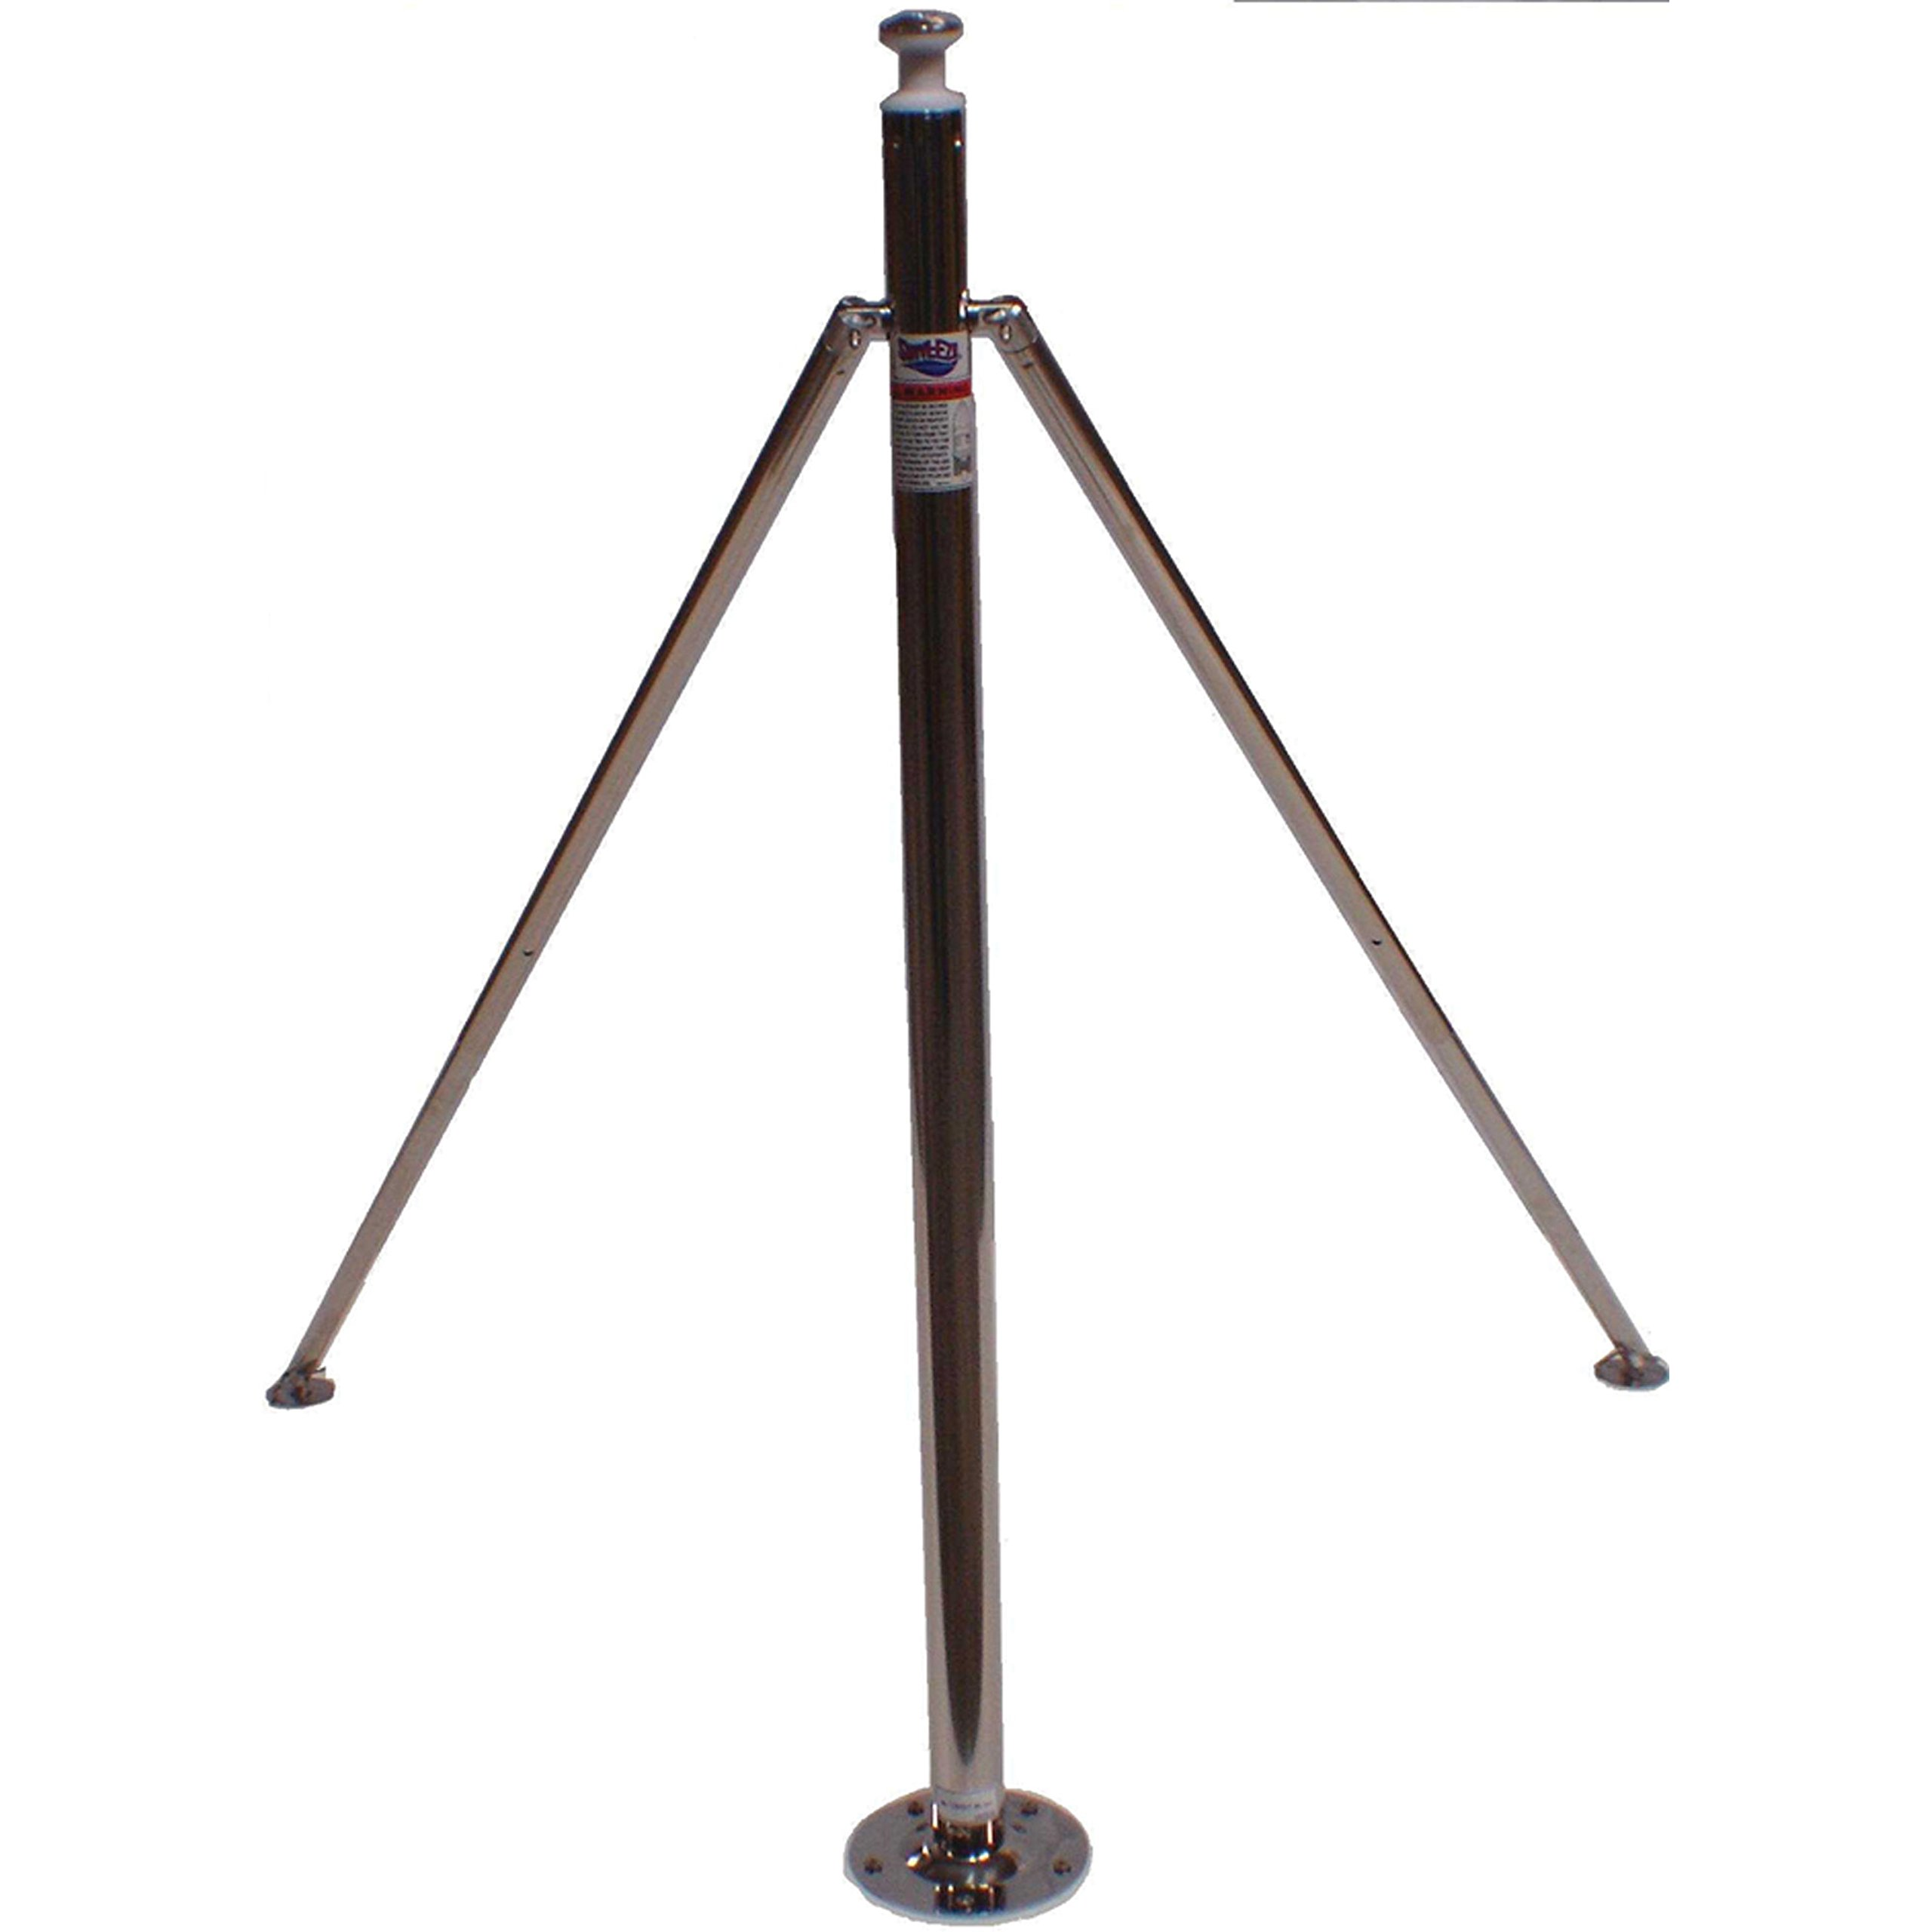 Attwood 923-009 Stainless Steel Ski Pylon - 45'' Fixed Height x 2'' Diameter by attwood (Image #1)